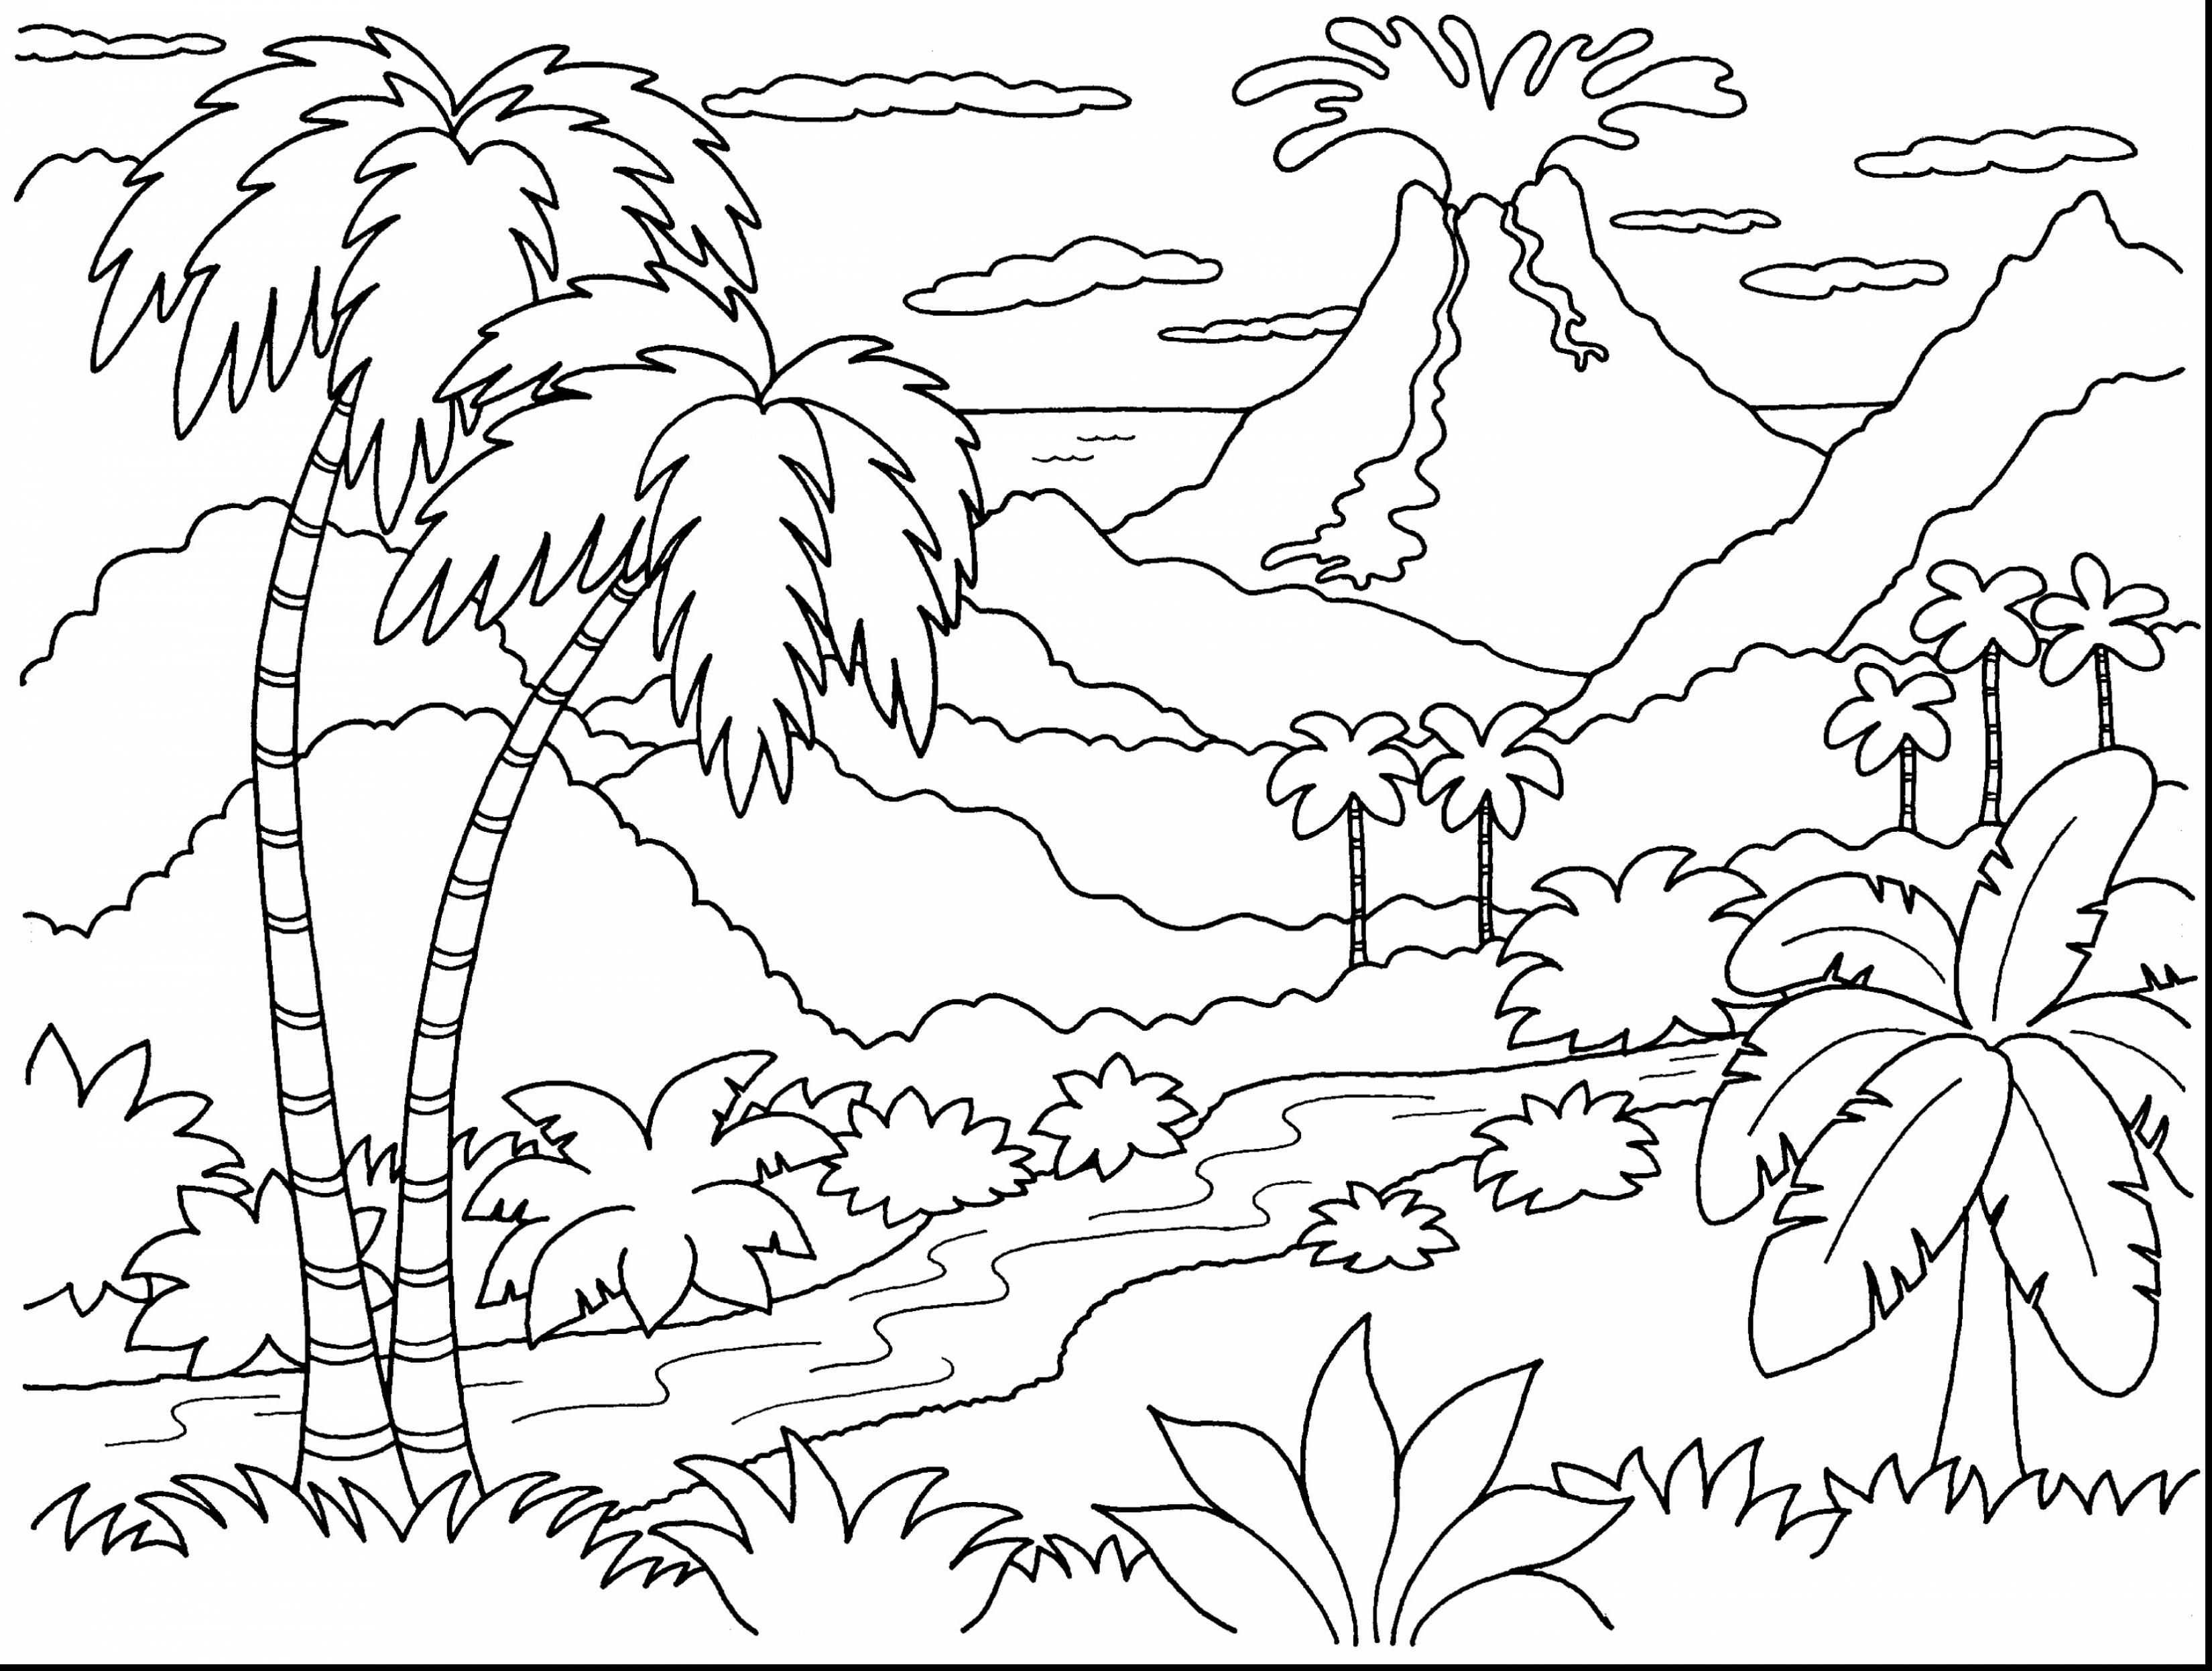 3300x2493 Remarkable Volcano Island Coloring Page With Volcano Coloring